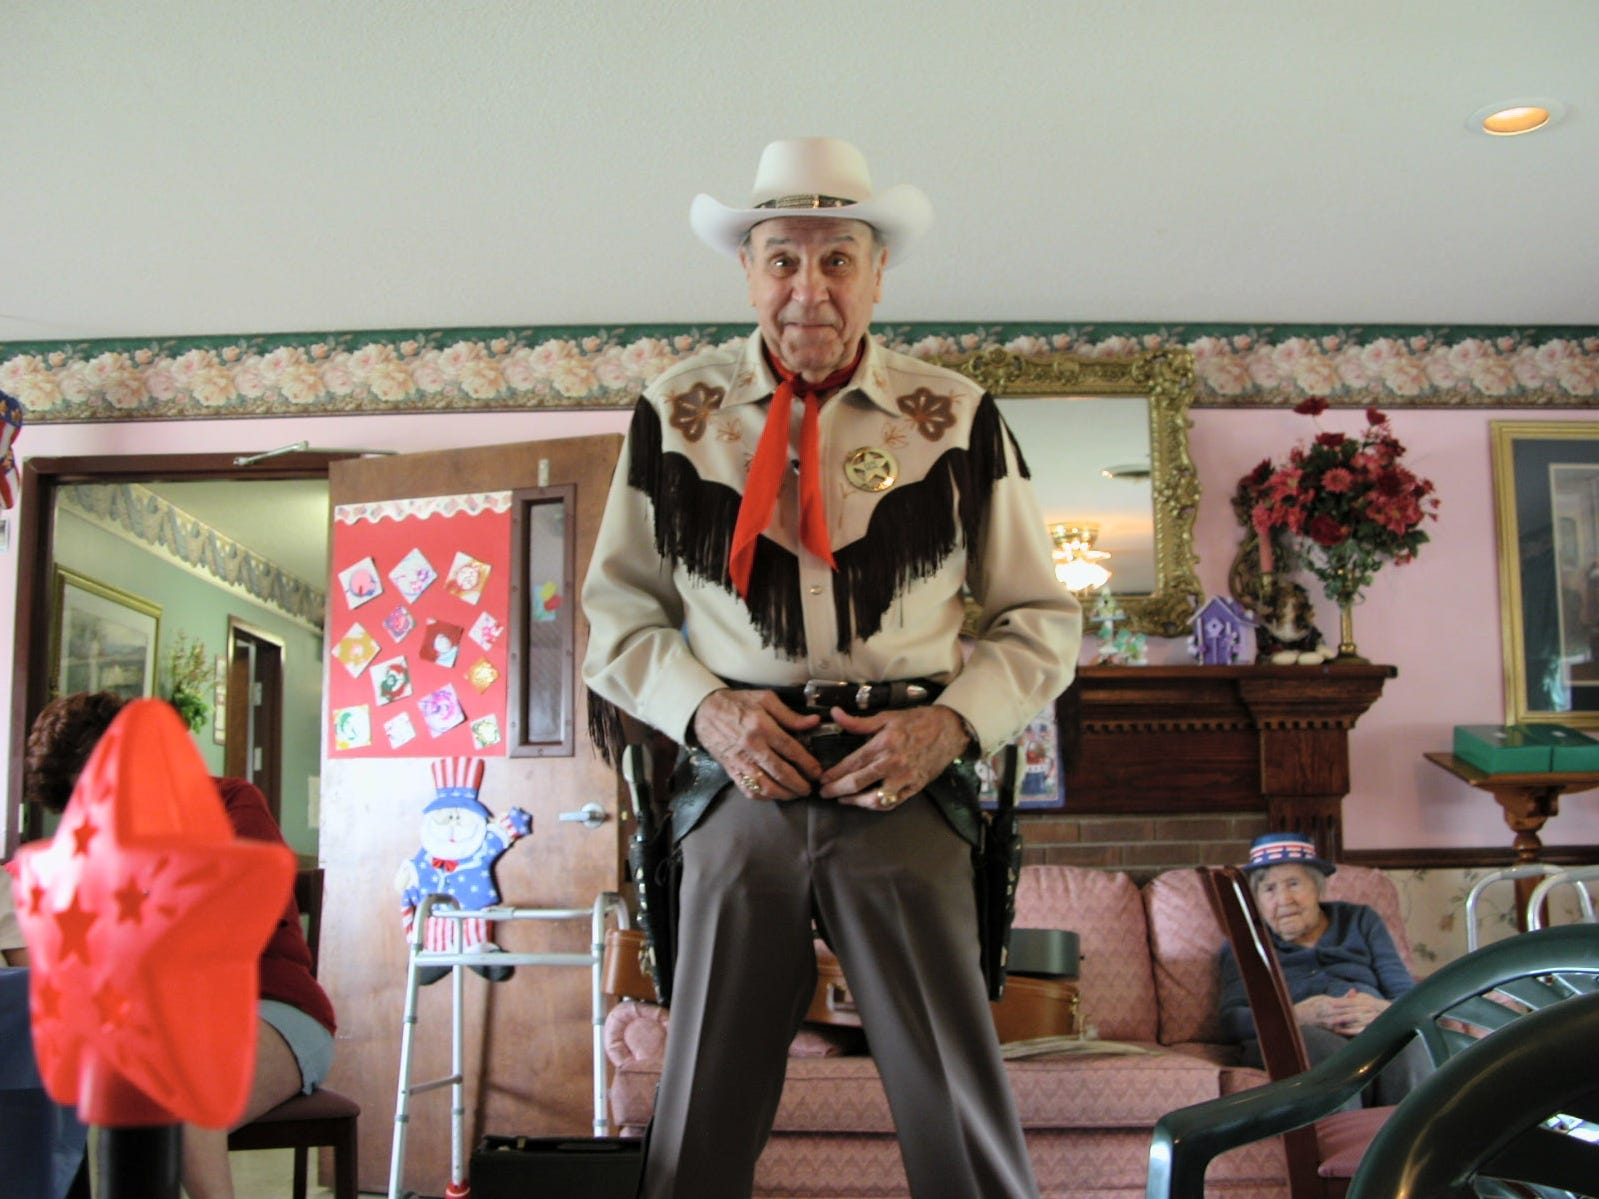 Marshal Andy sings cowboy songs of the 30s and 40s in the living room of the Home Away from Home care center in Maryville. Though he is as old as many of the residents and is suffering from a painful illness, he says the thrill of performing keeps him going strong and blunts the pain.